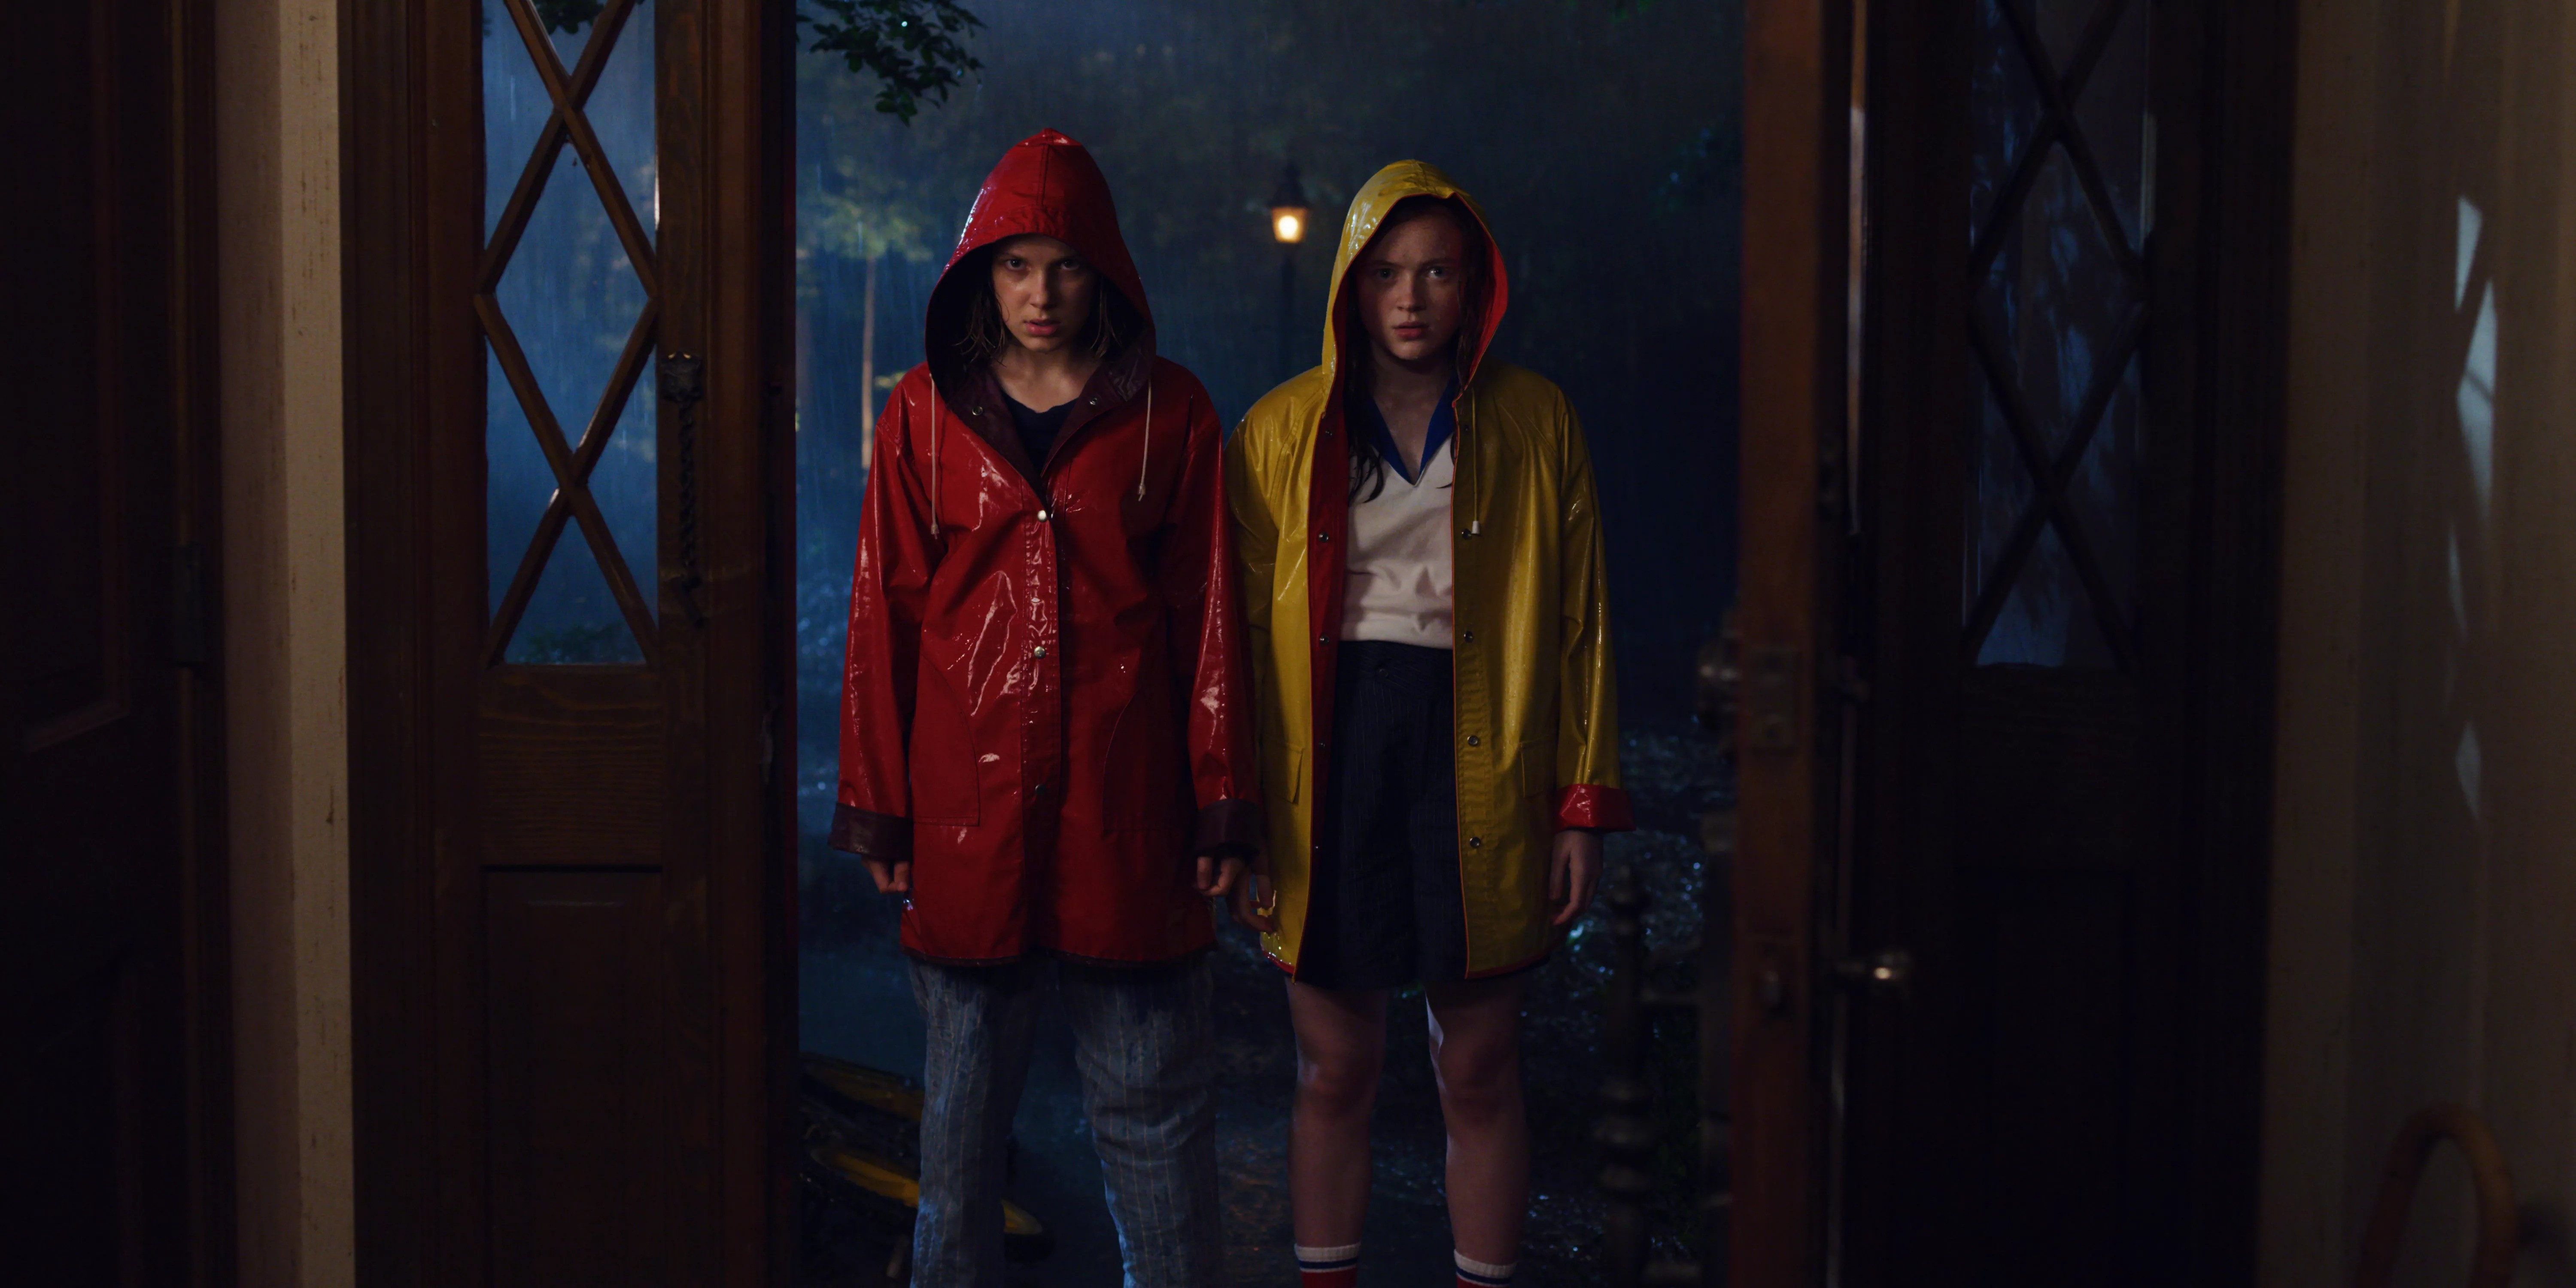 max and eleven stranger things season 3 1577915076 - Max And Eleven Stranger Things Season 3 - Max And Eleven 4k wallpaper